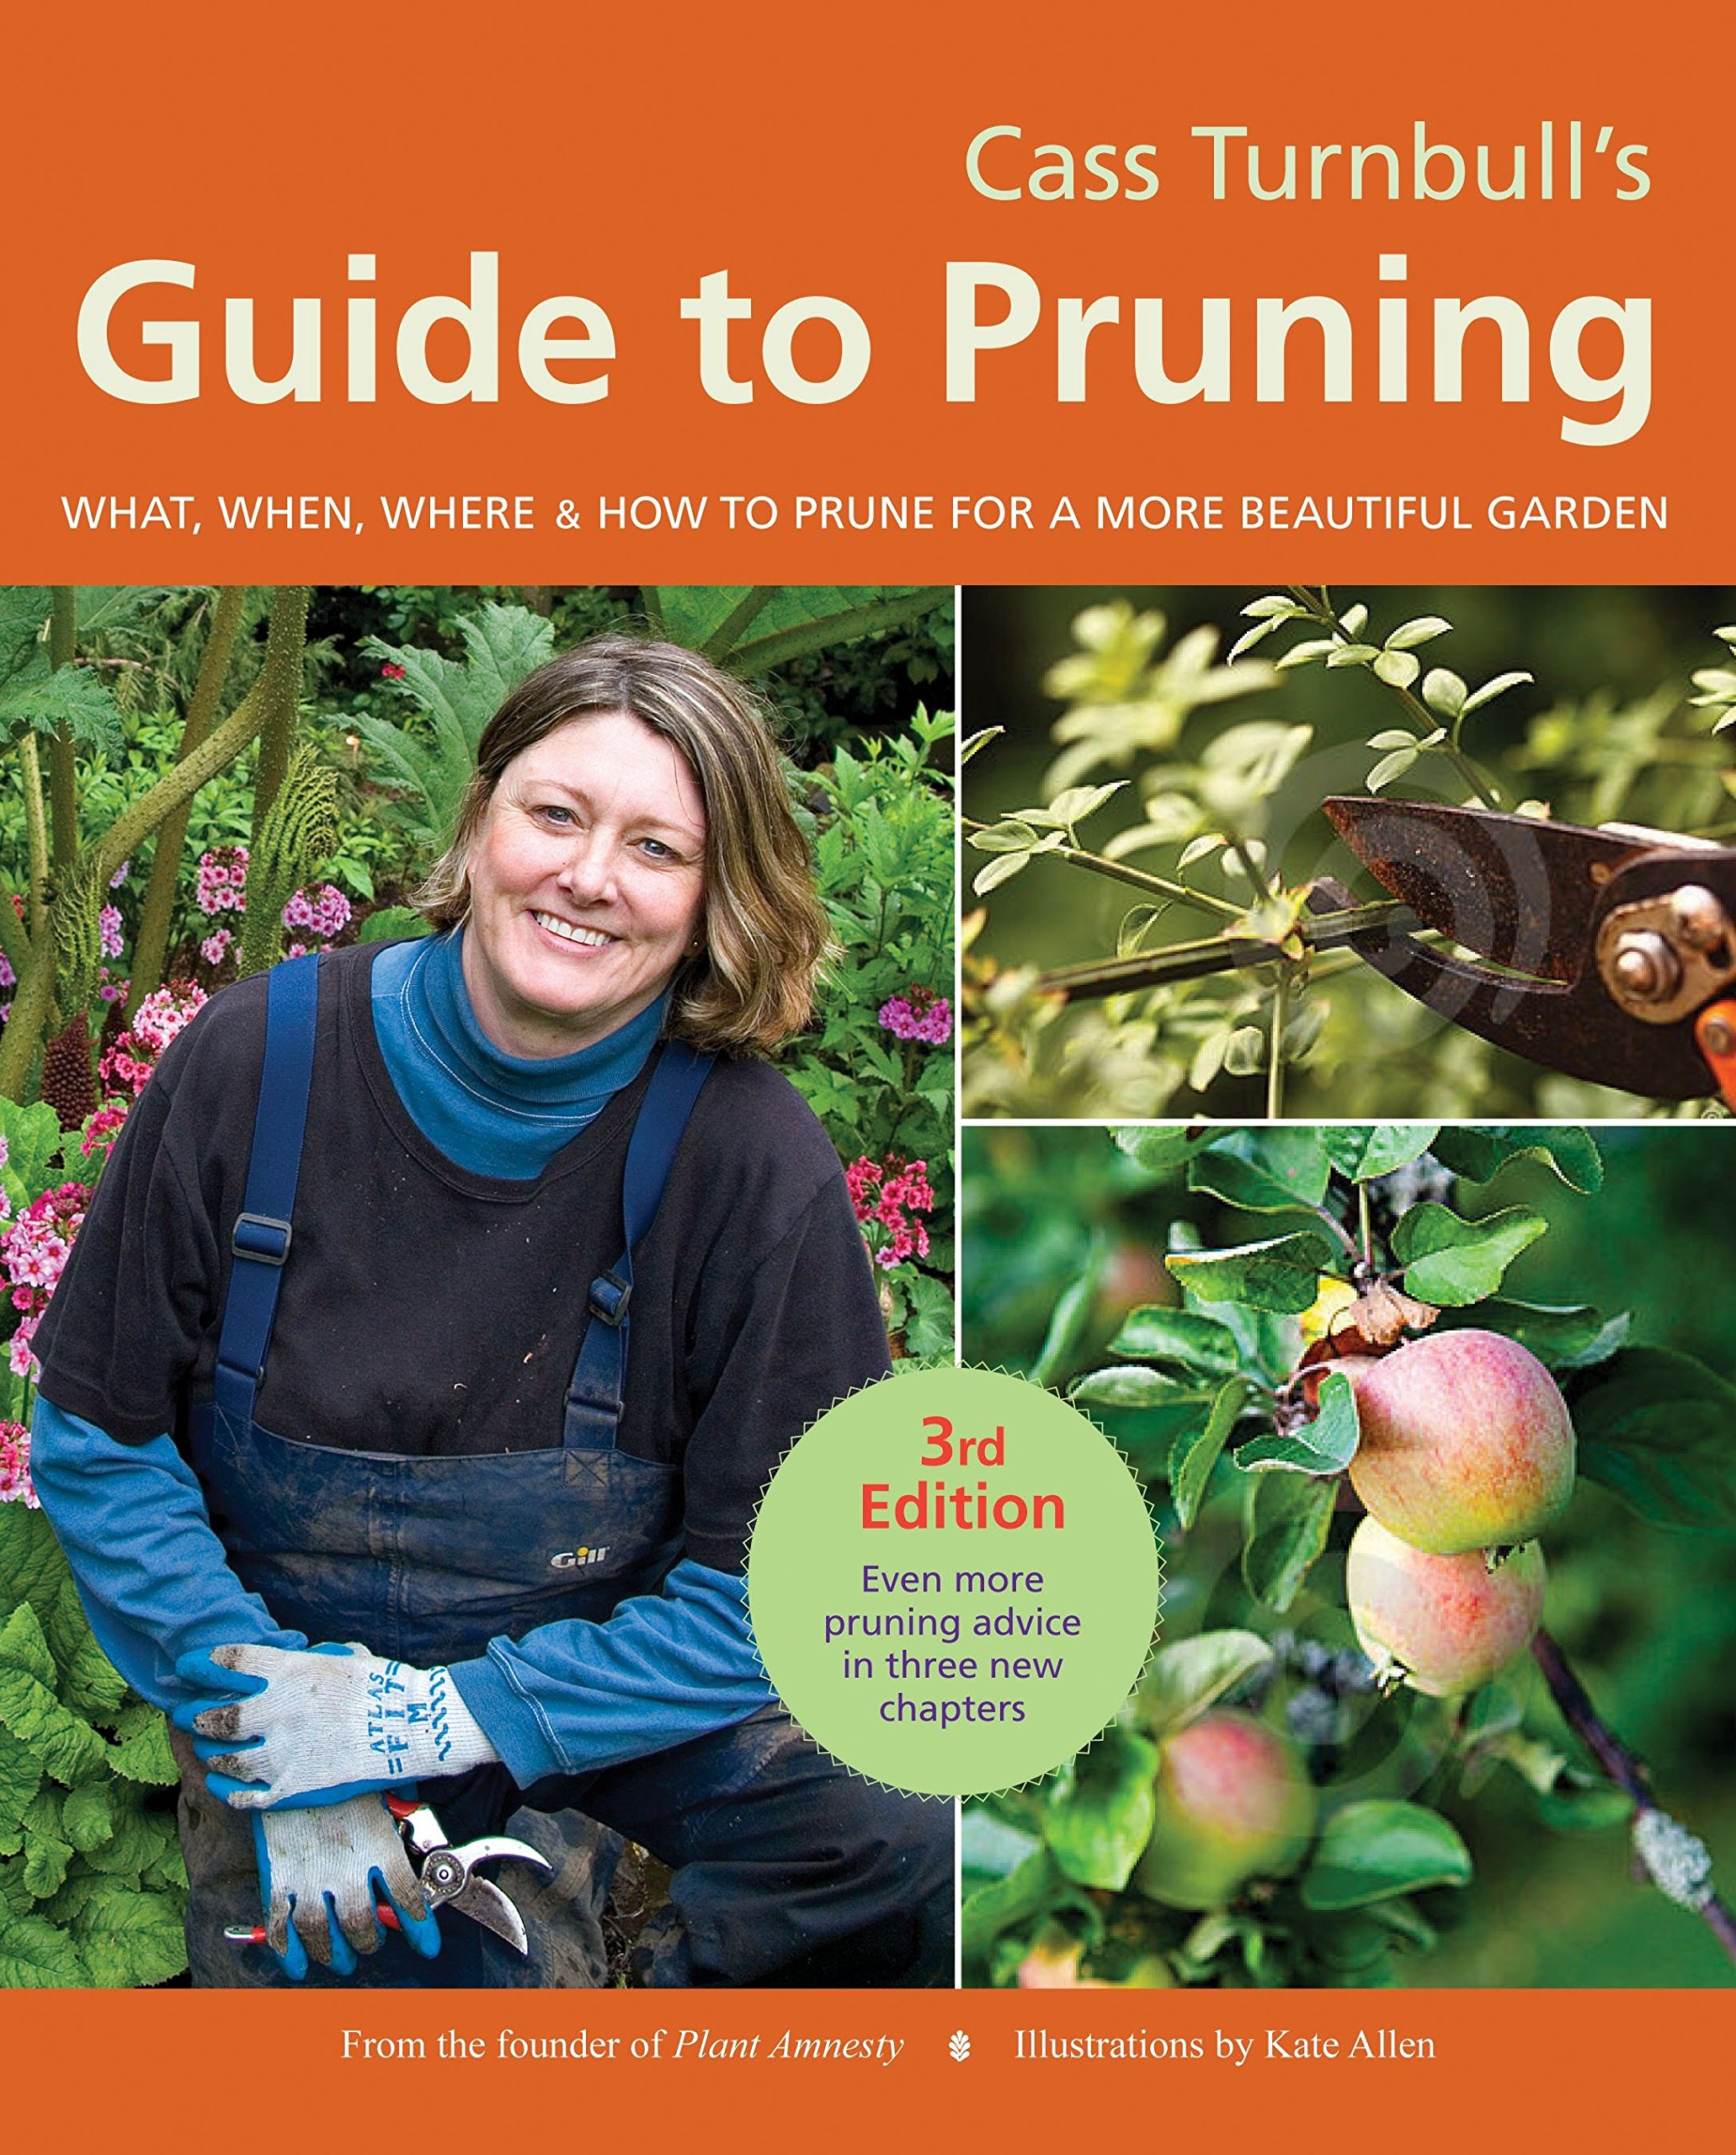 Cass Turnbull's Guide to Pruning, 3rd Edition: What, When, Where, and How to Prune for a More Beautiful Garden by Sasquatch Books